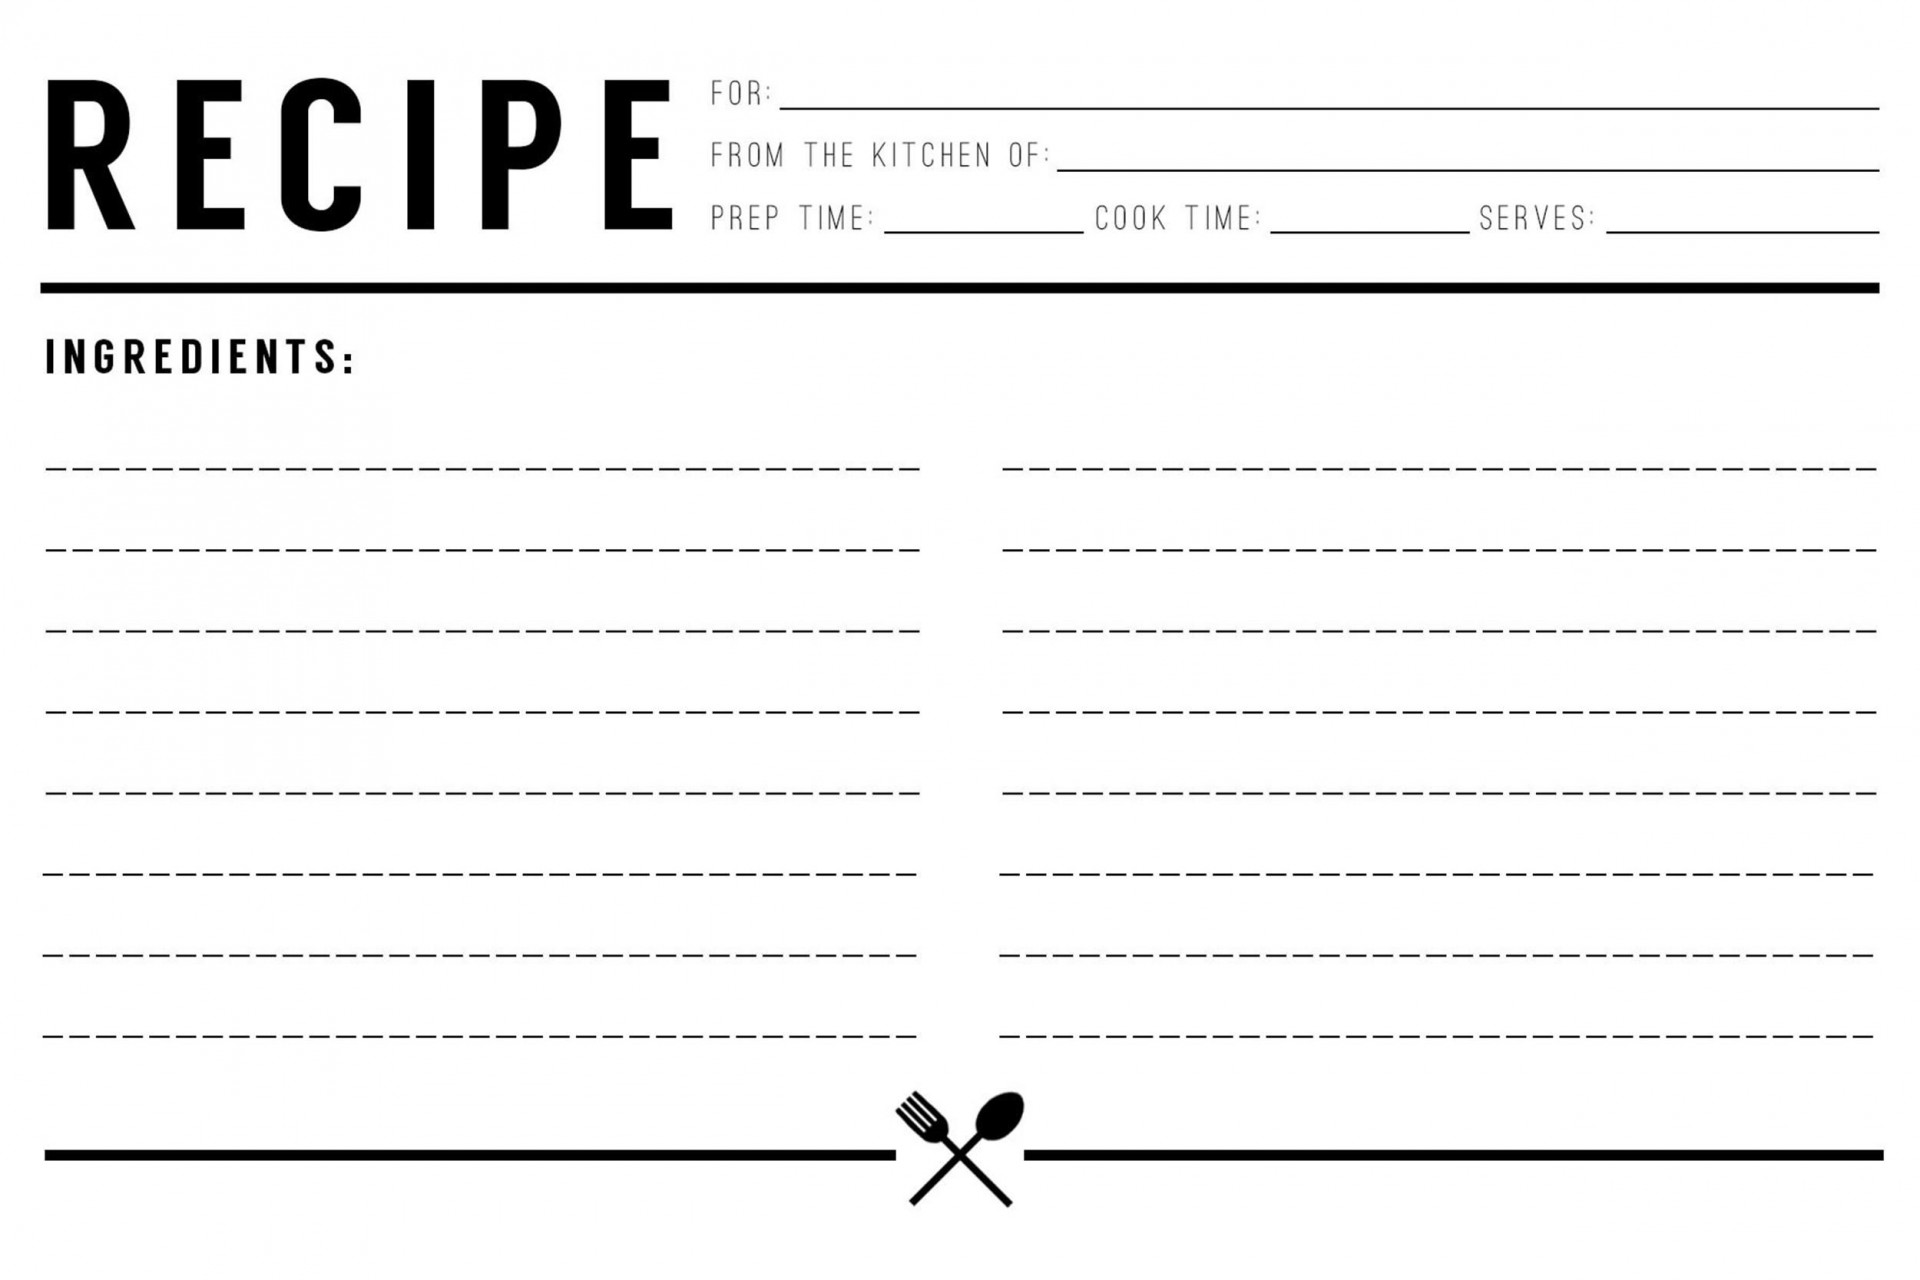 008 Marvelou Free Recipe Template For Word High Resolution  Book Editable Card Microsoft 4x6 Page1920